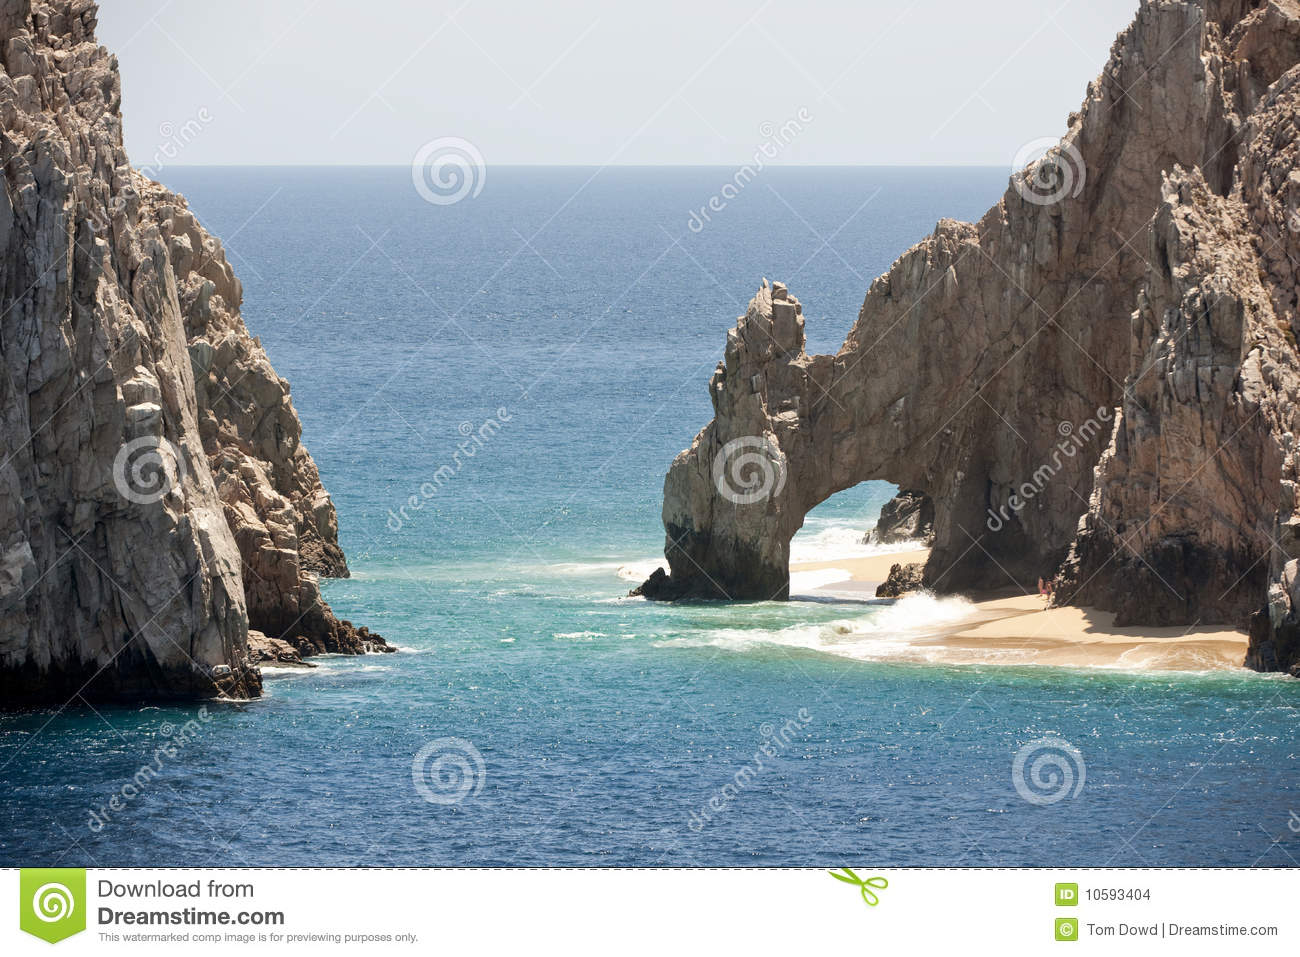 Cabo San Lucas clipart #13, Download drawings